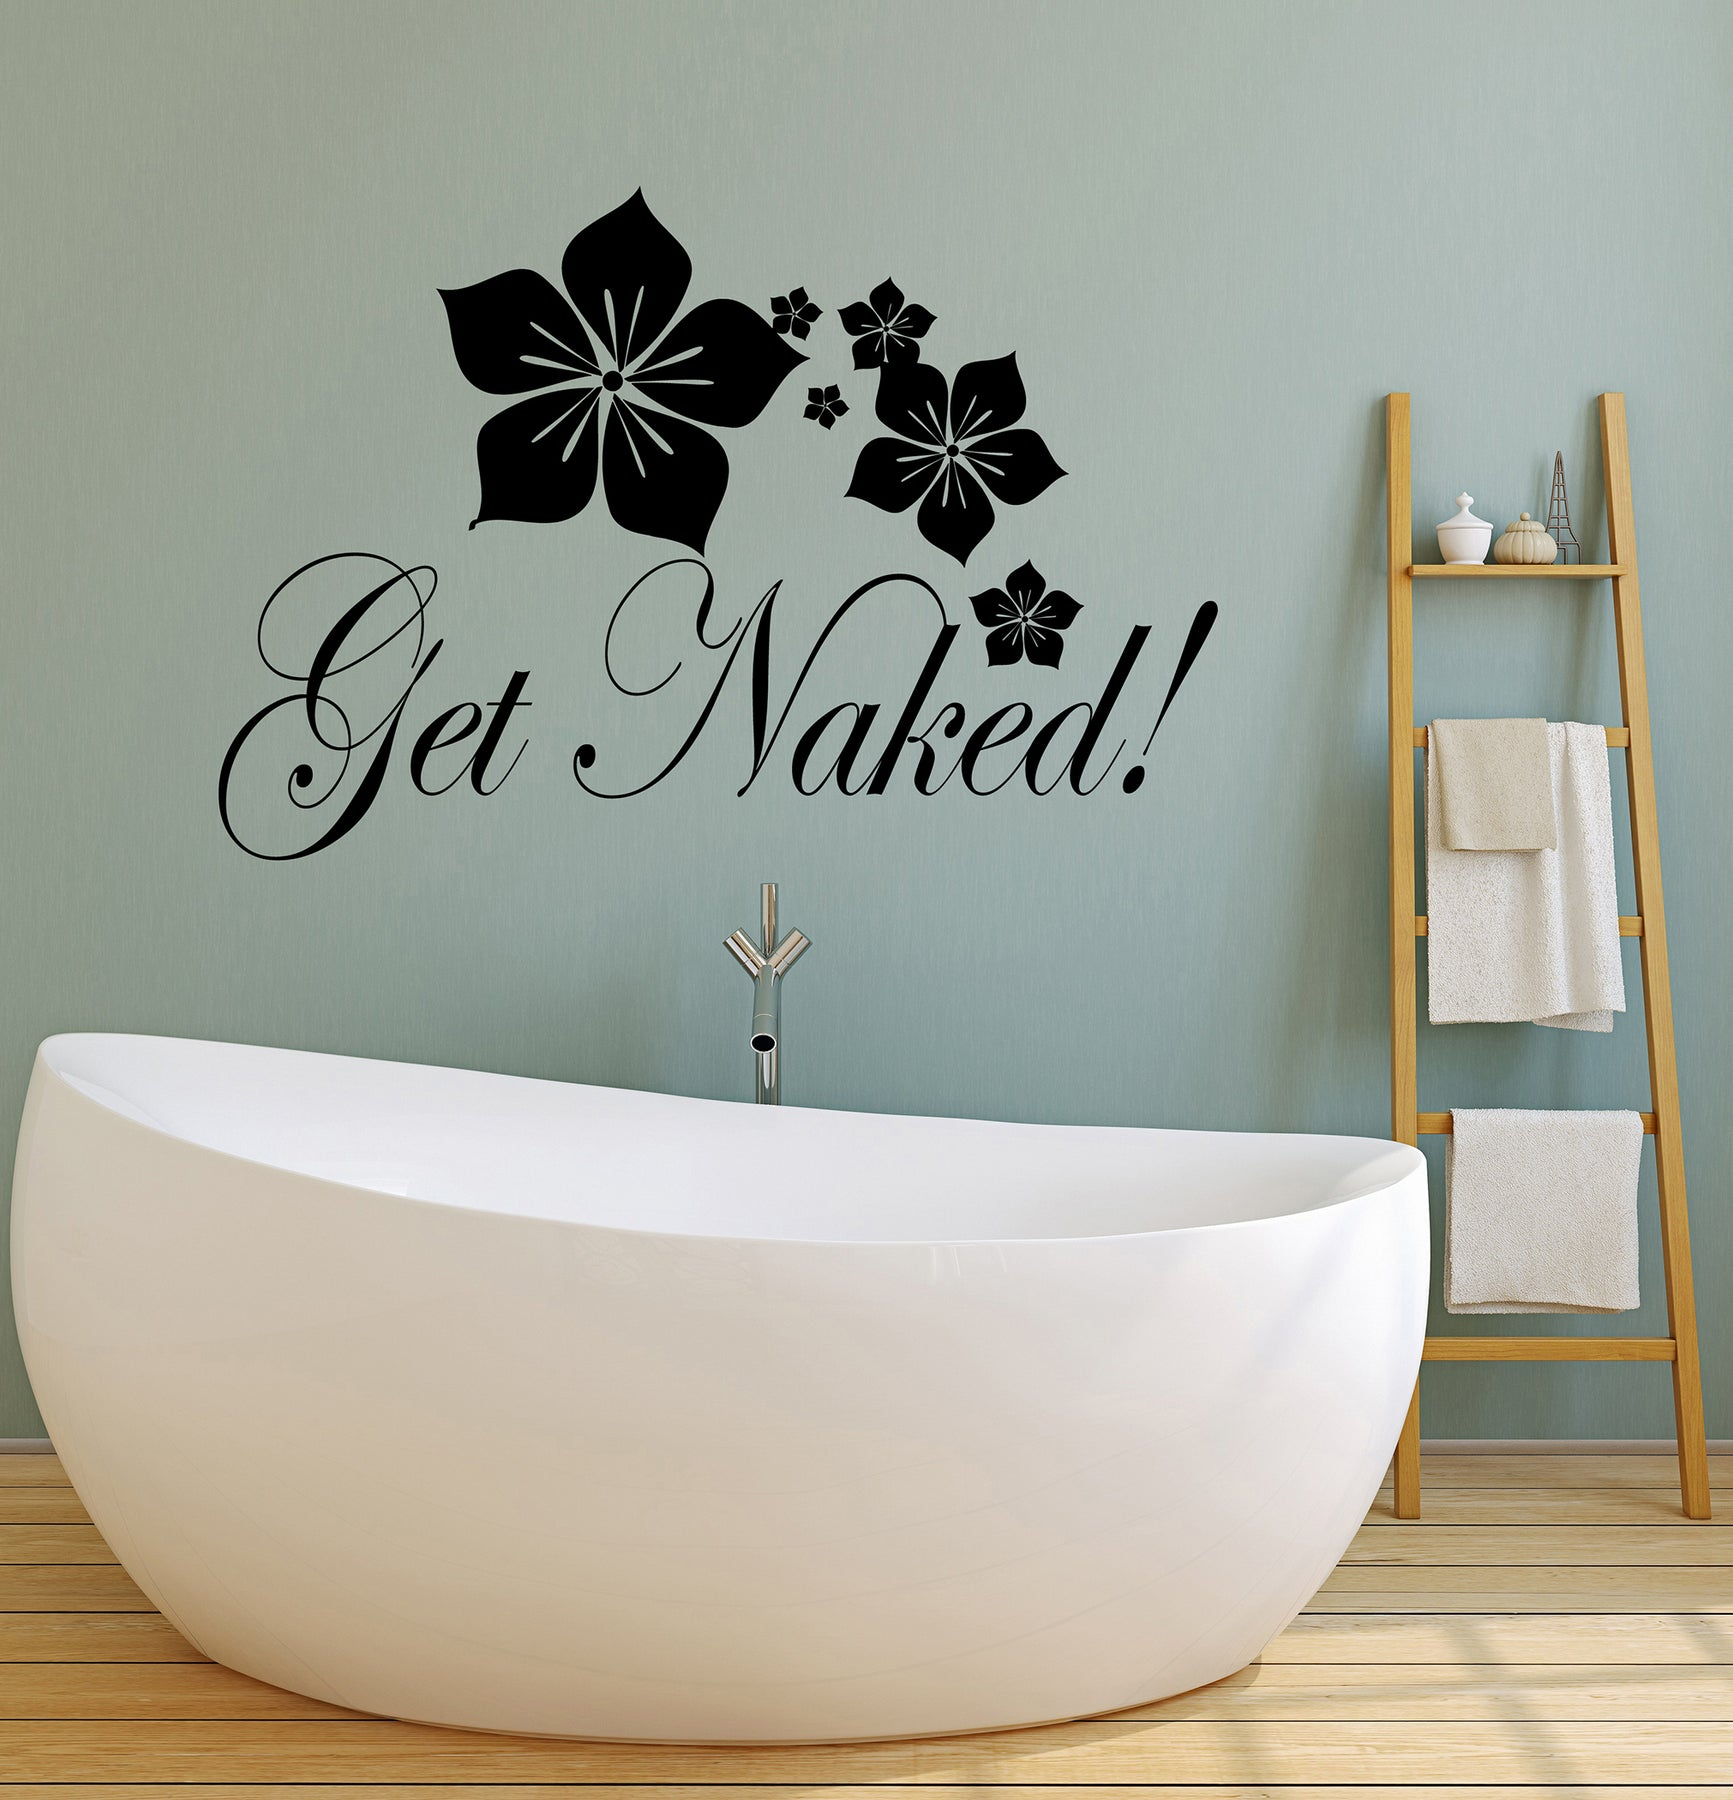 Get Naked Wall Decor Get Naked Decal Bathtub Stickers Wall Decals Bathroom Wall Decor Bathroom Wall Stickers Bathtub Decals